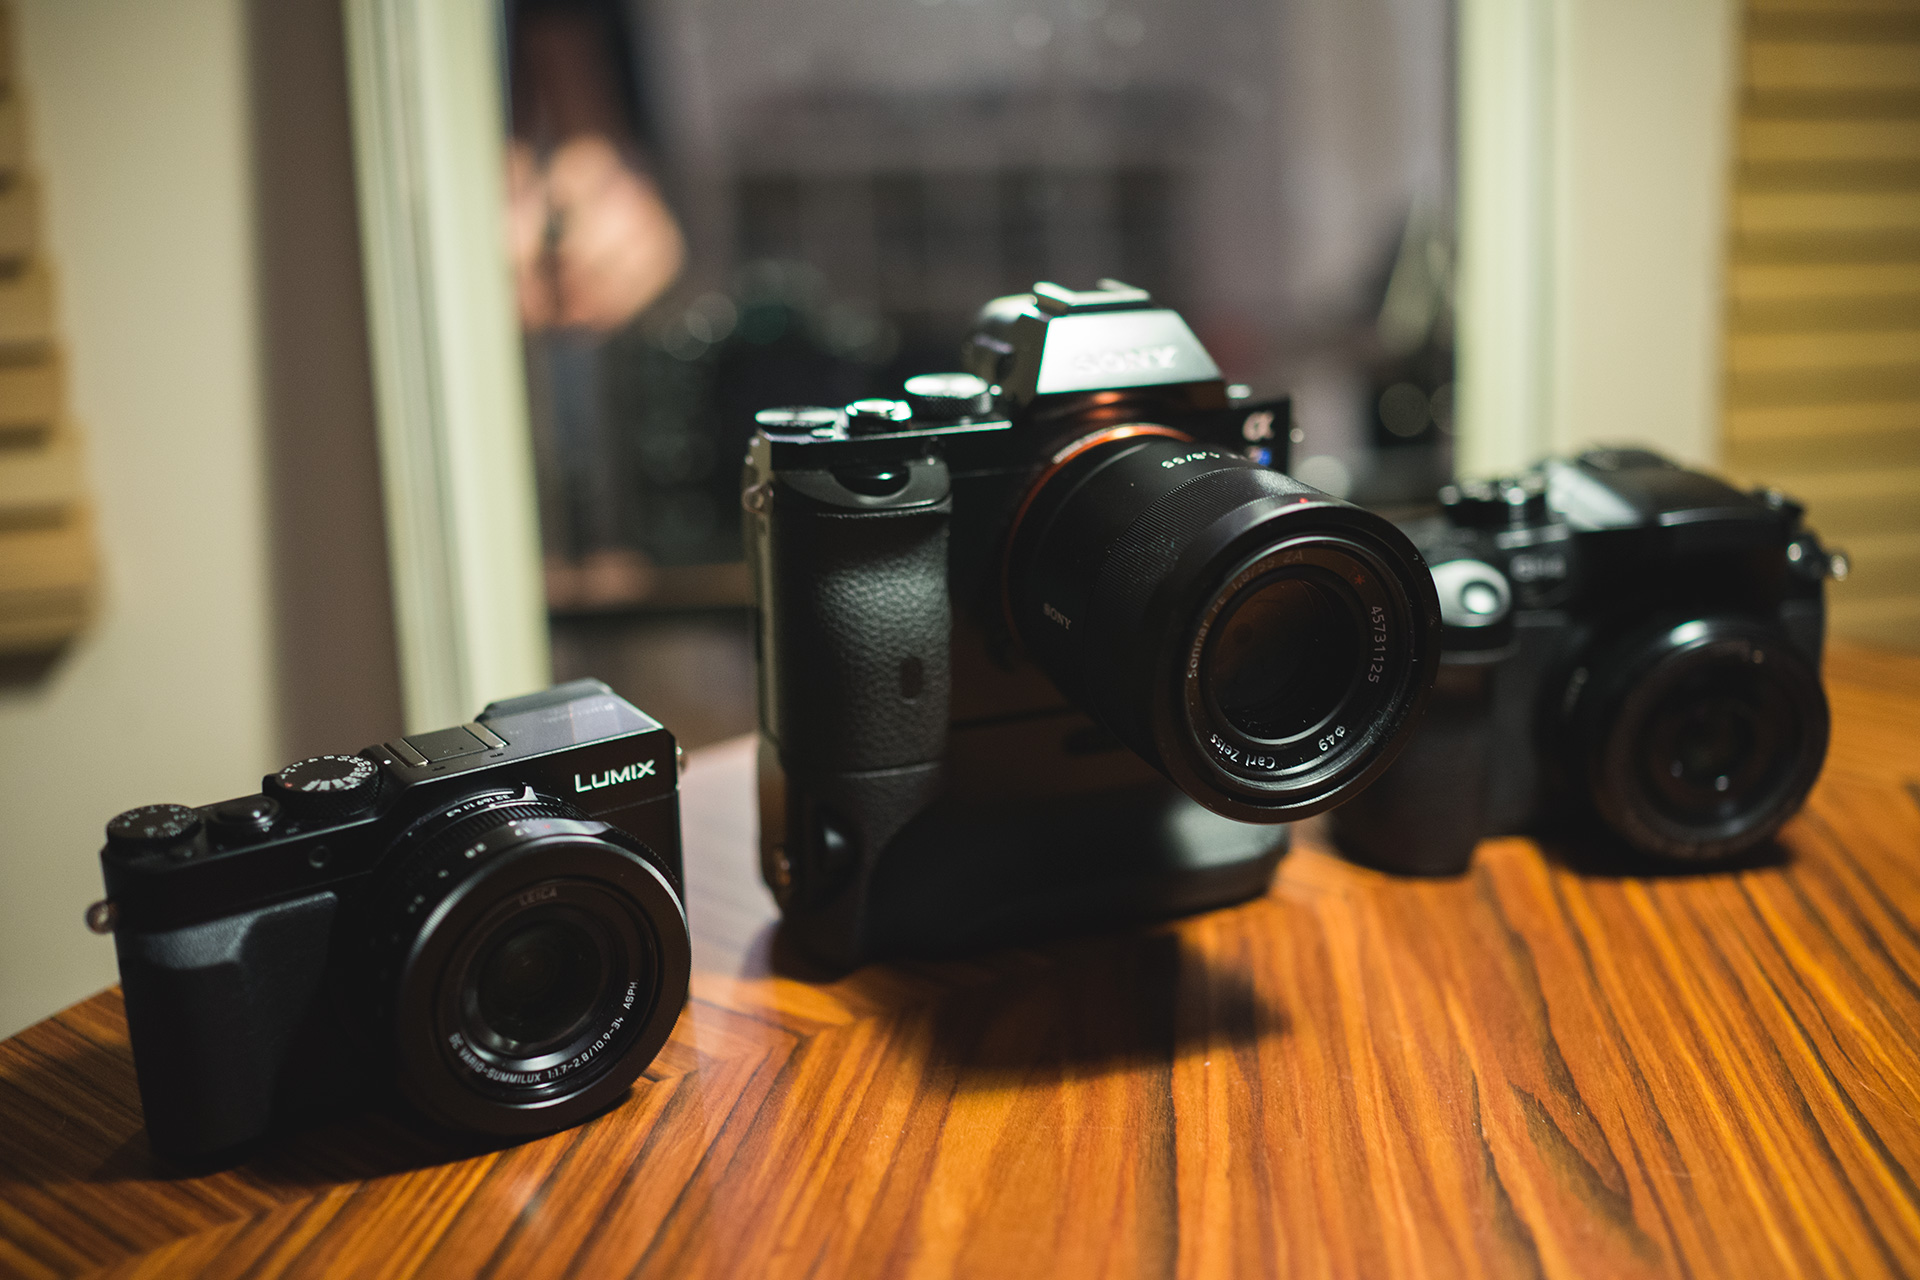 Sony A7S Review Part 2 and Conclusion - EOSHD